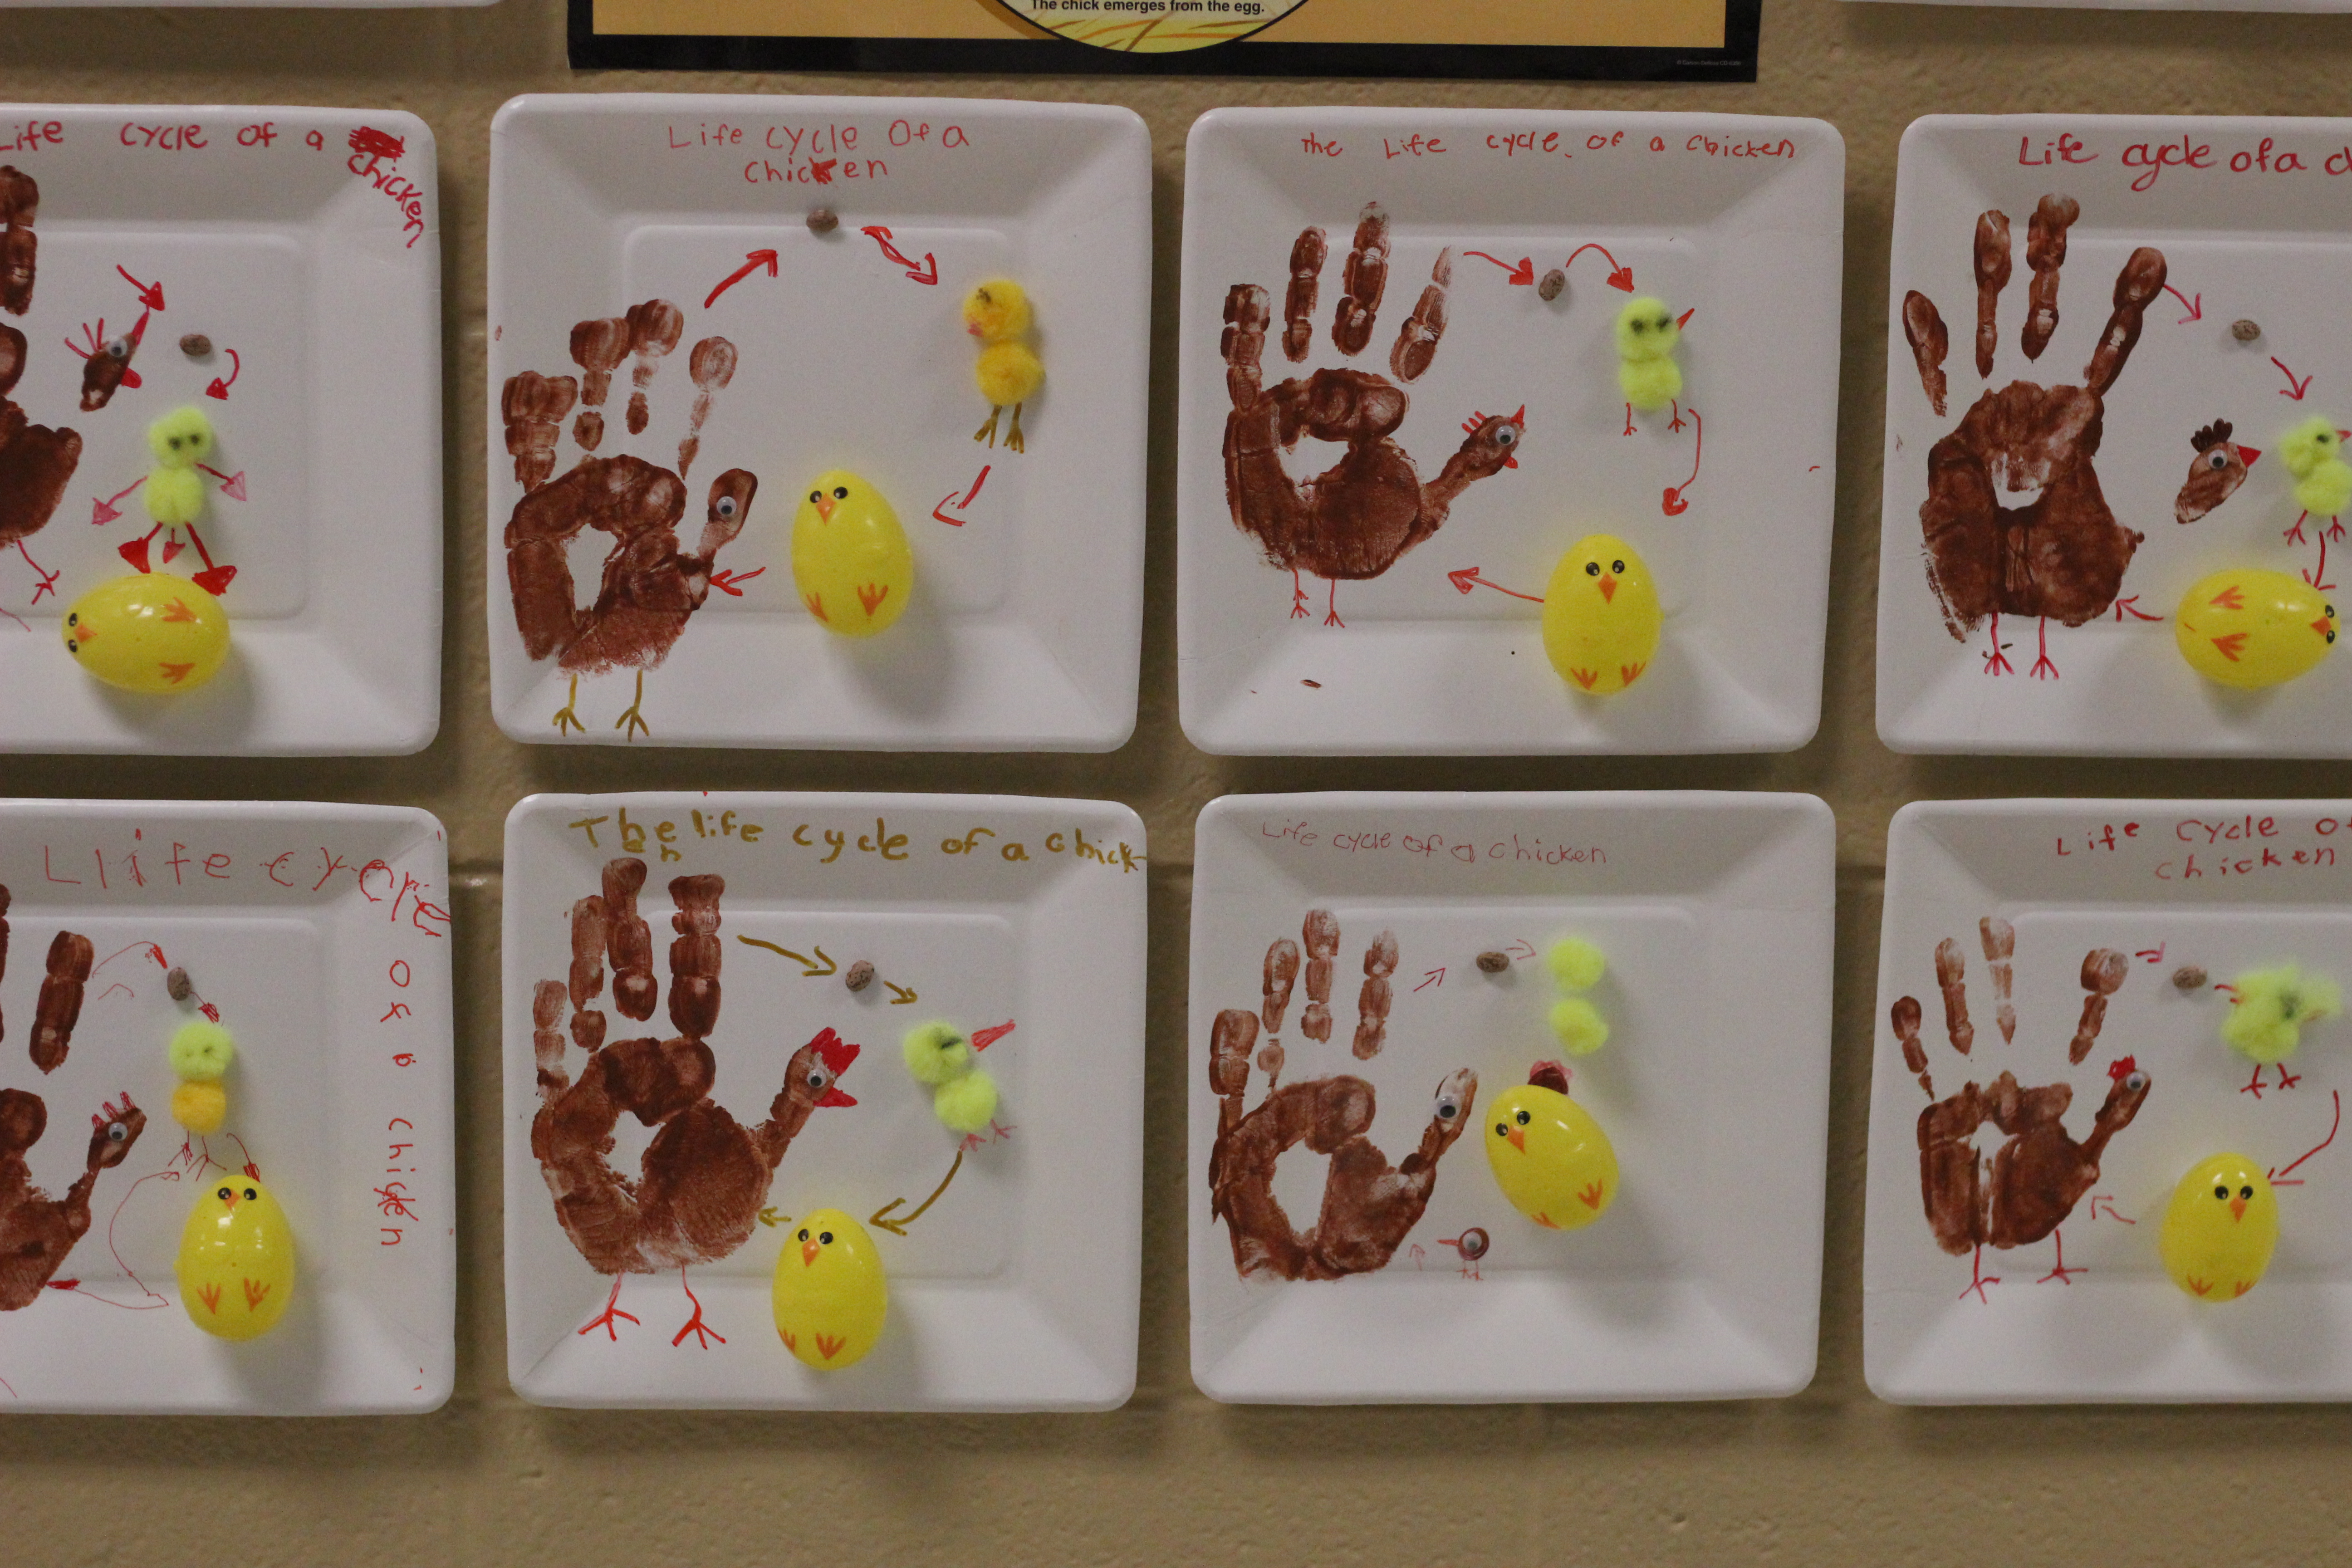 Students show the life cycle of chick